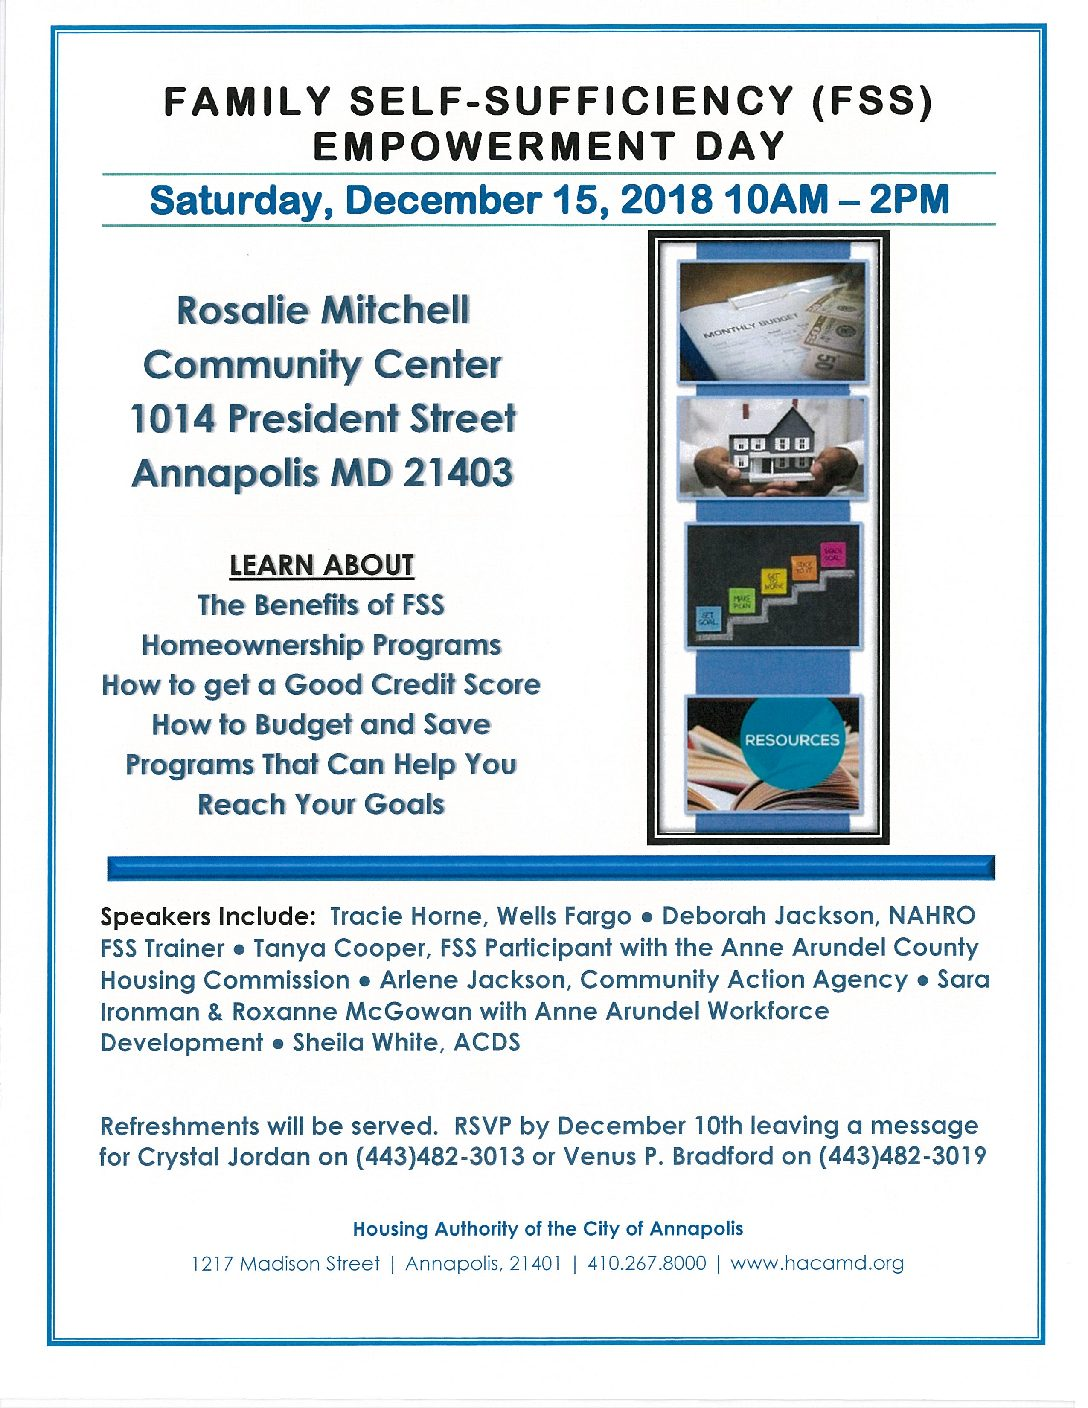 Family Self-Sufficiency Empowerment Day - Arundel Community